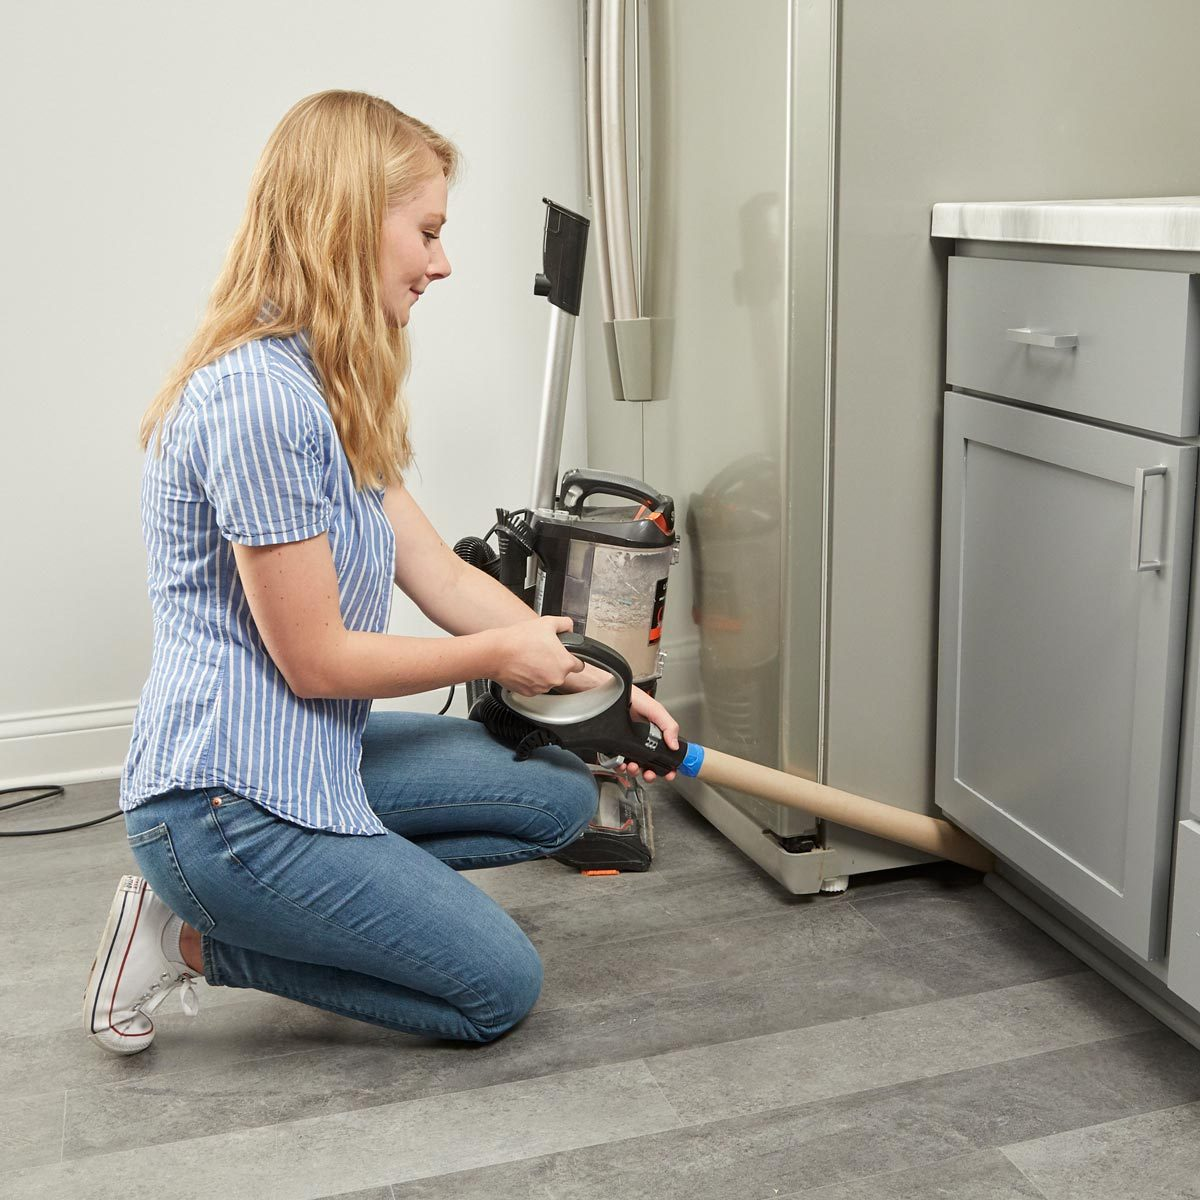 Cheap Handy Hints to Fix Common Home Issues